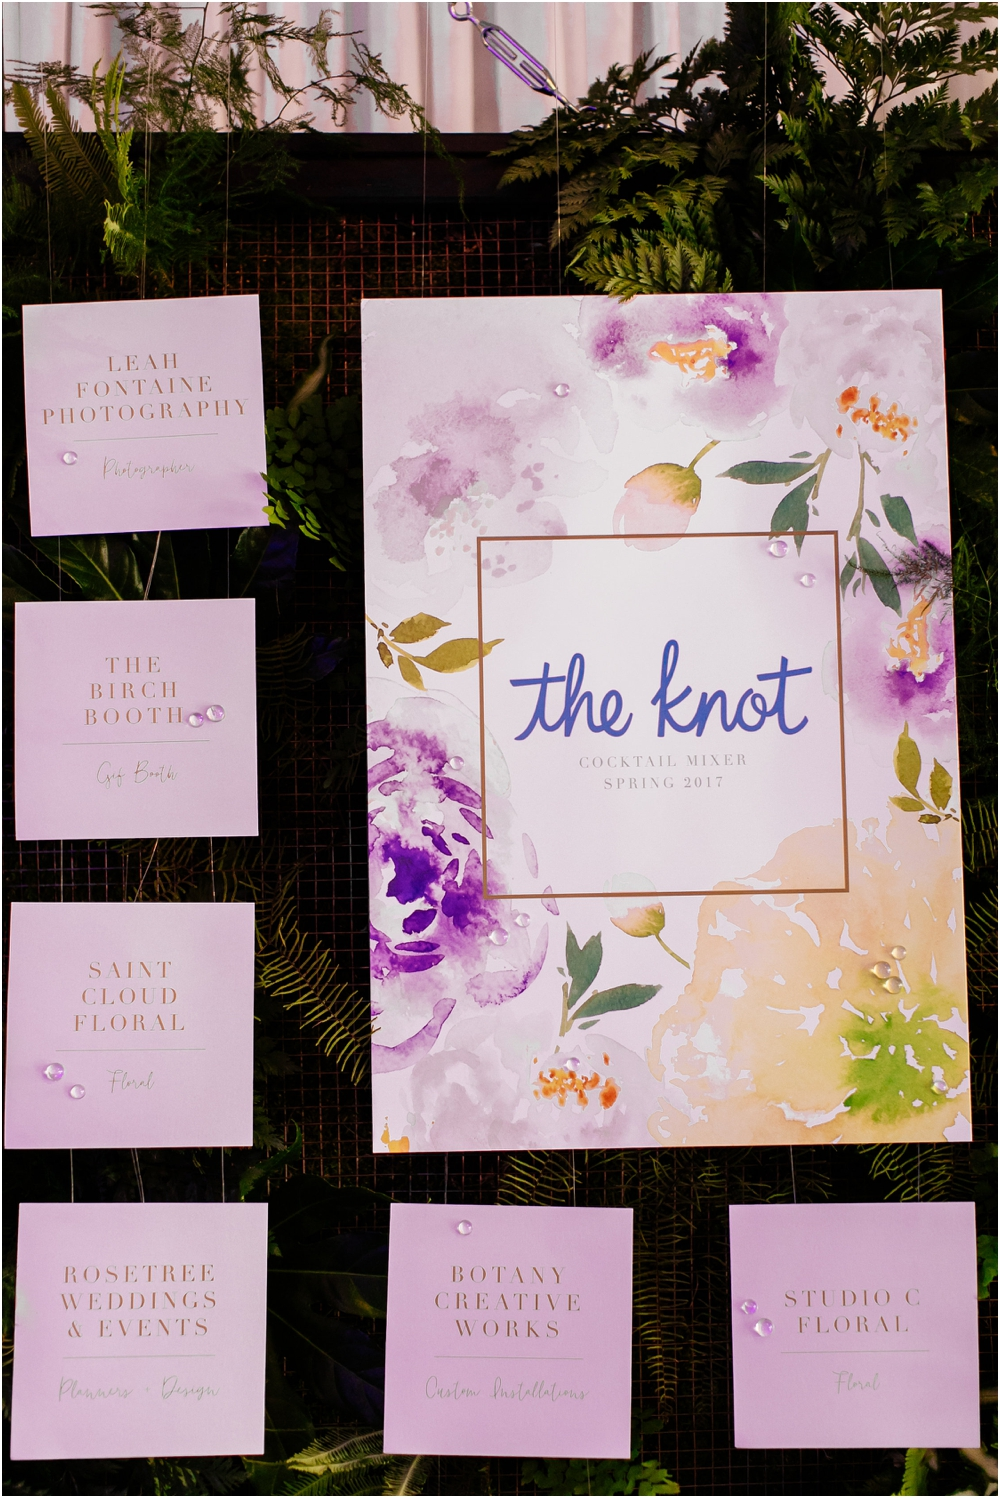 The_Knot_Pro_Minnesota_Mixer_Minneapolis_Wedding_Planner_1080.jpg